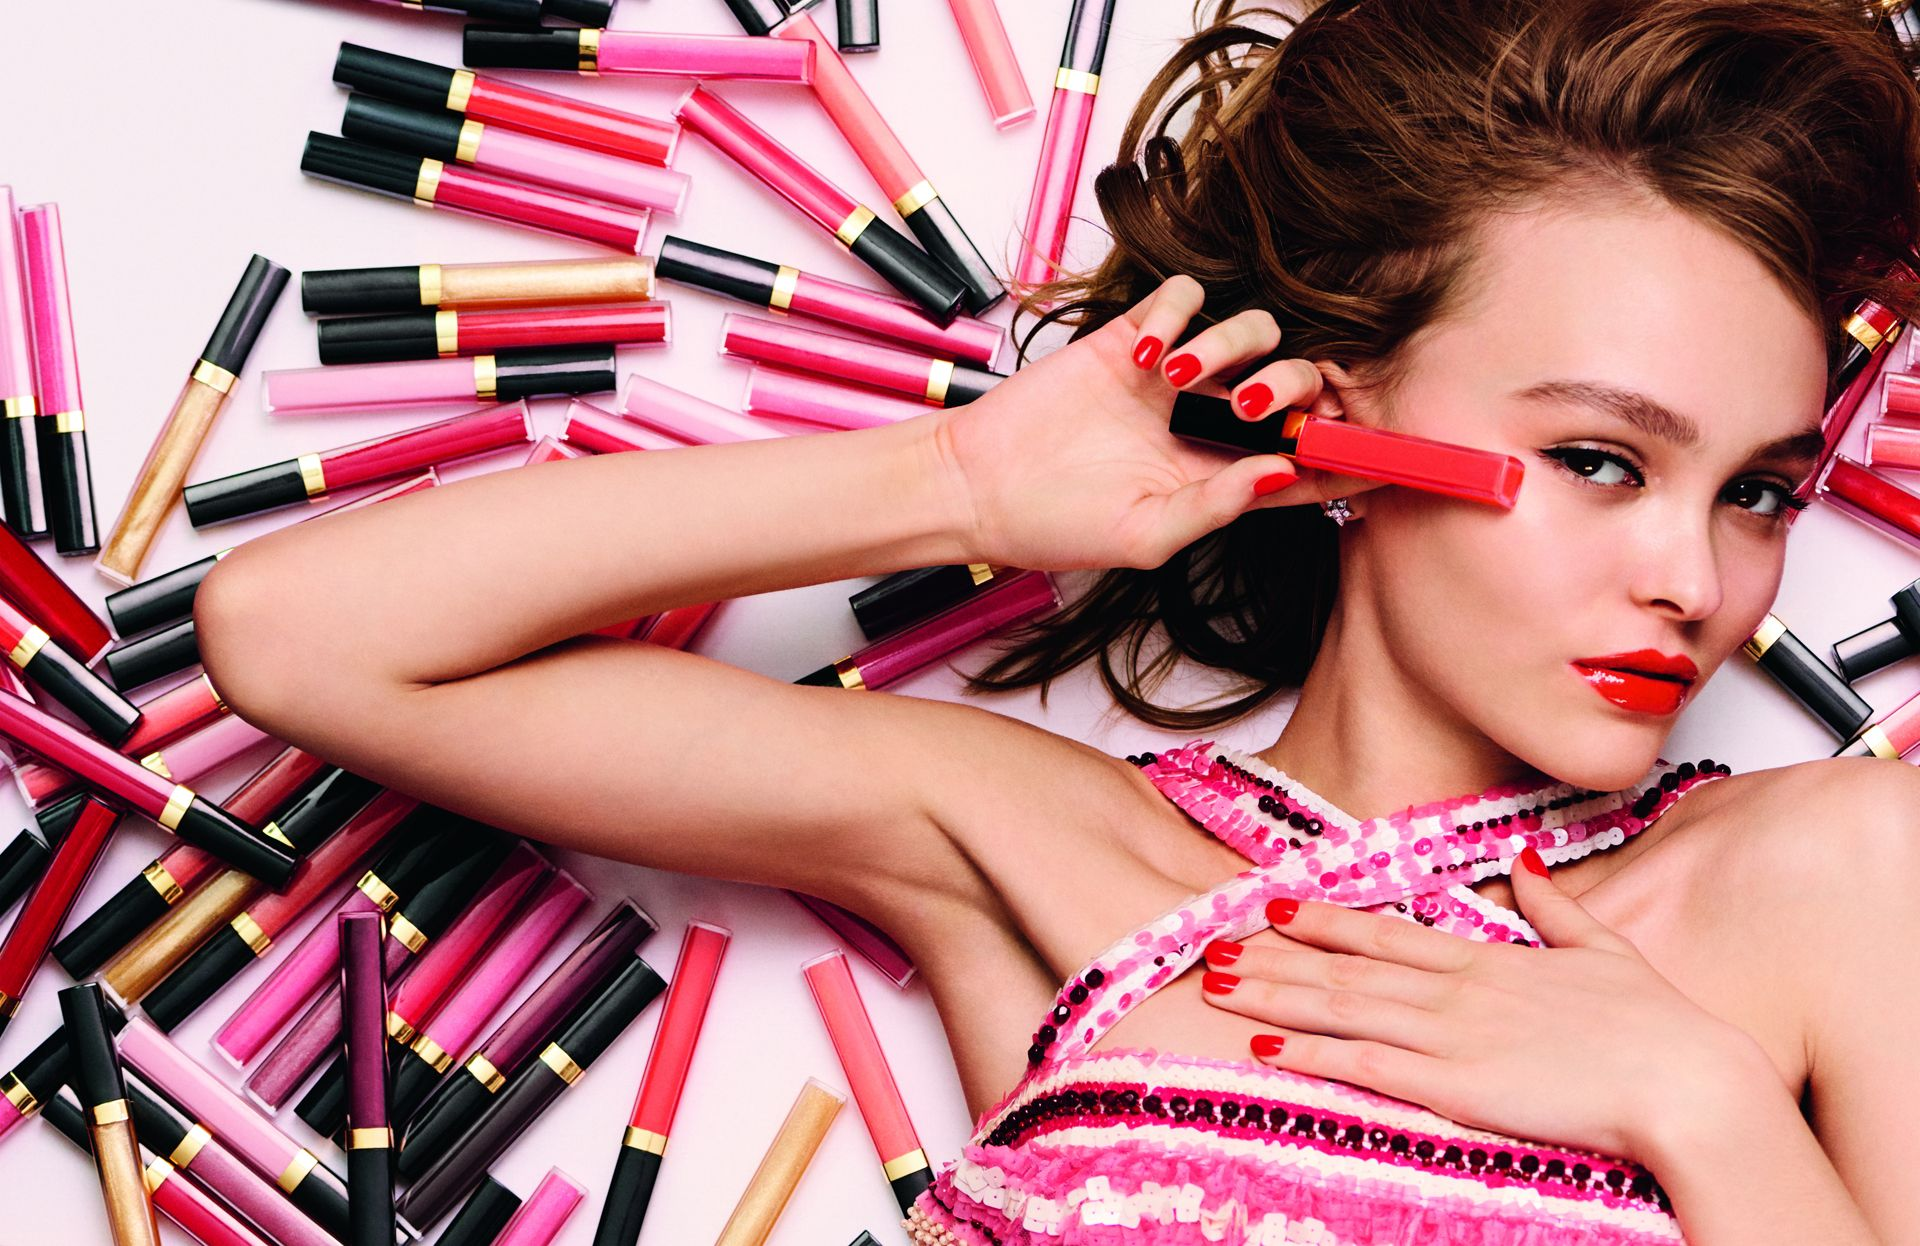 Chanel announces Lily-Rose Depp as the face of Rouge Coco Gloss